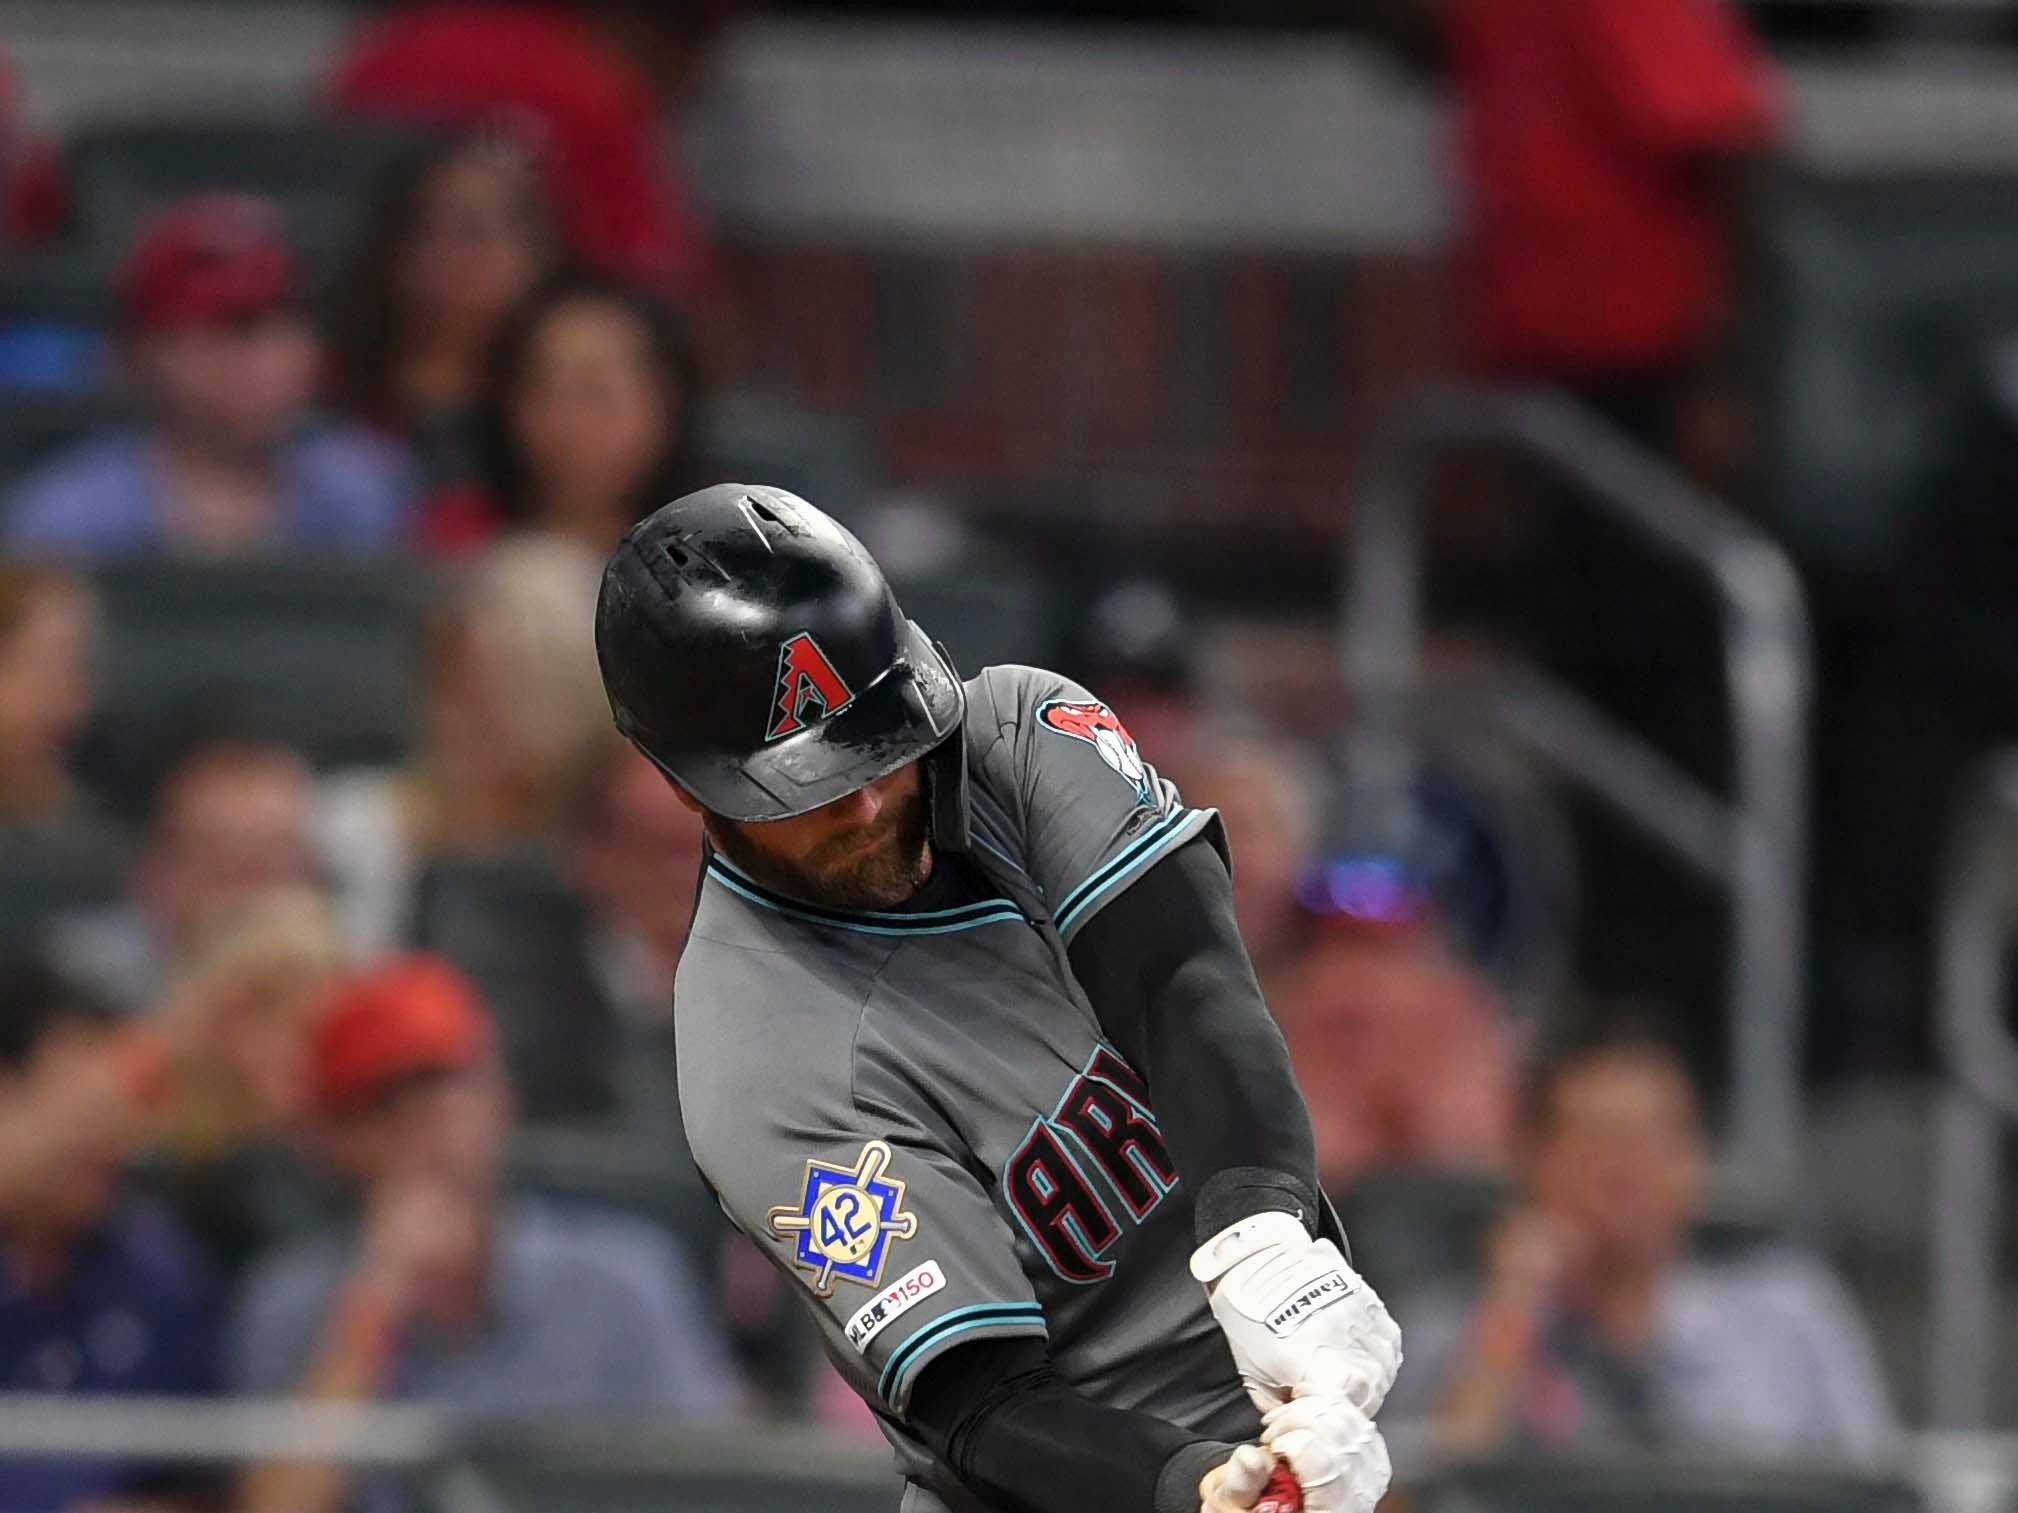 Apr 16, 2019; Atlanta, GA, USA; Arizona Diamondbacks first baseman Christian Walker (53) singles before scoring against the Atlanta Braves during the fourth inning at SunTrust Park. Mandatory Credit: Dale Zanine-USA TODAY Sports